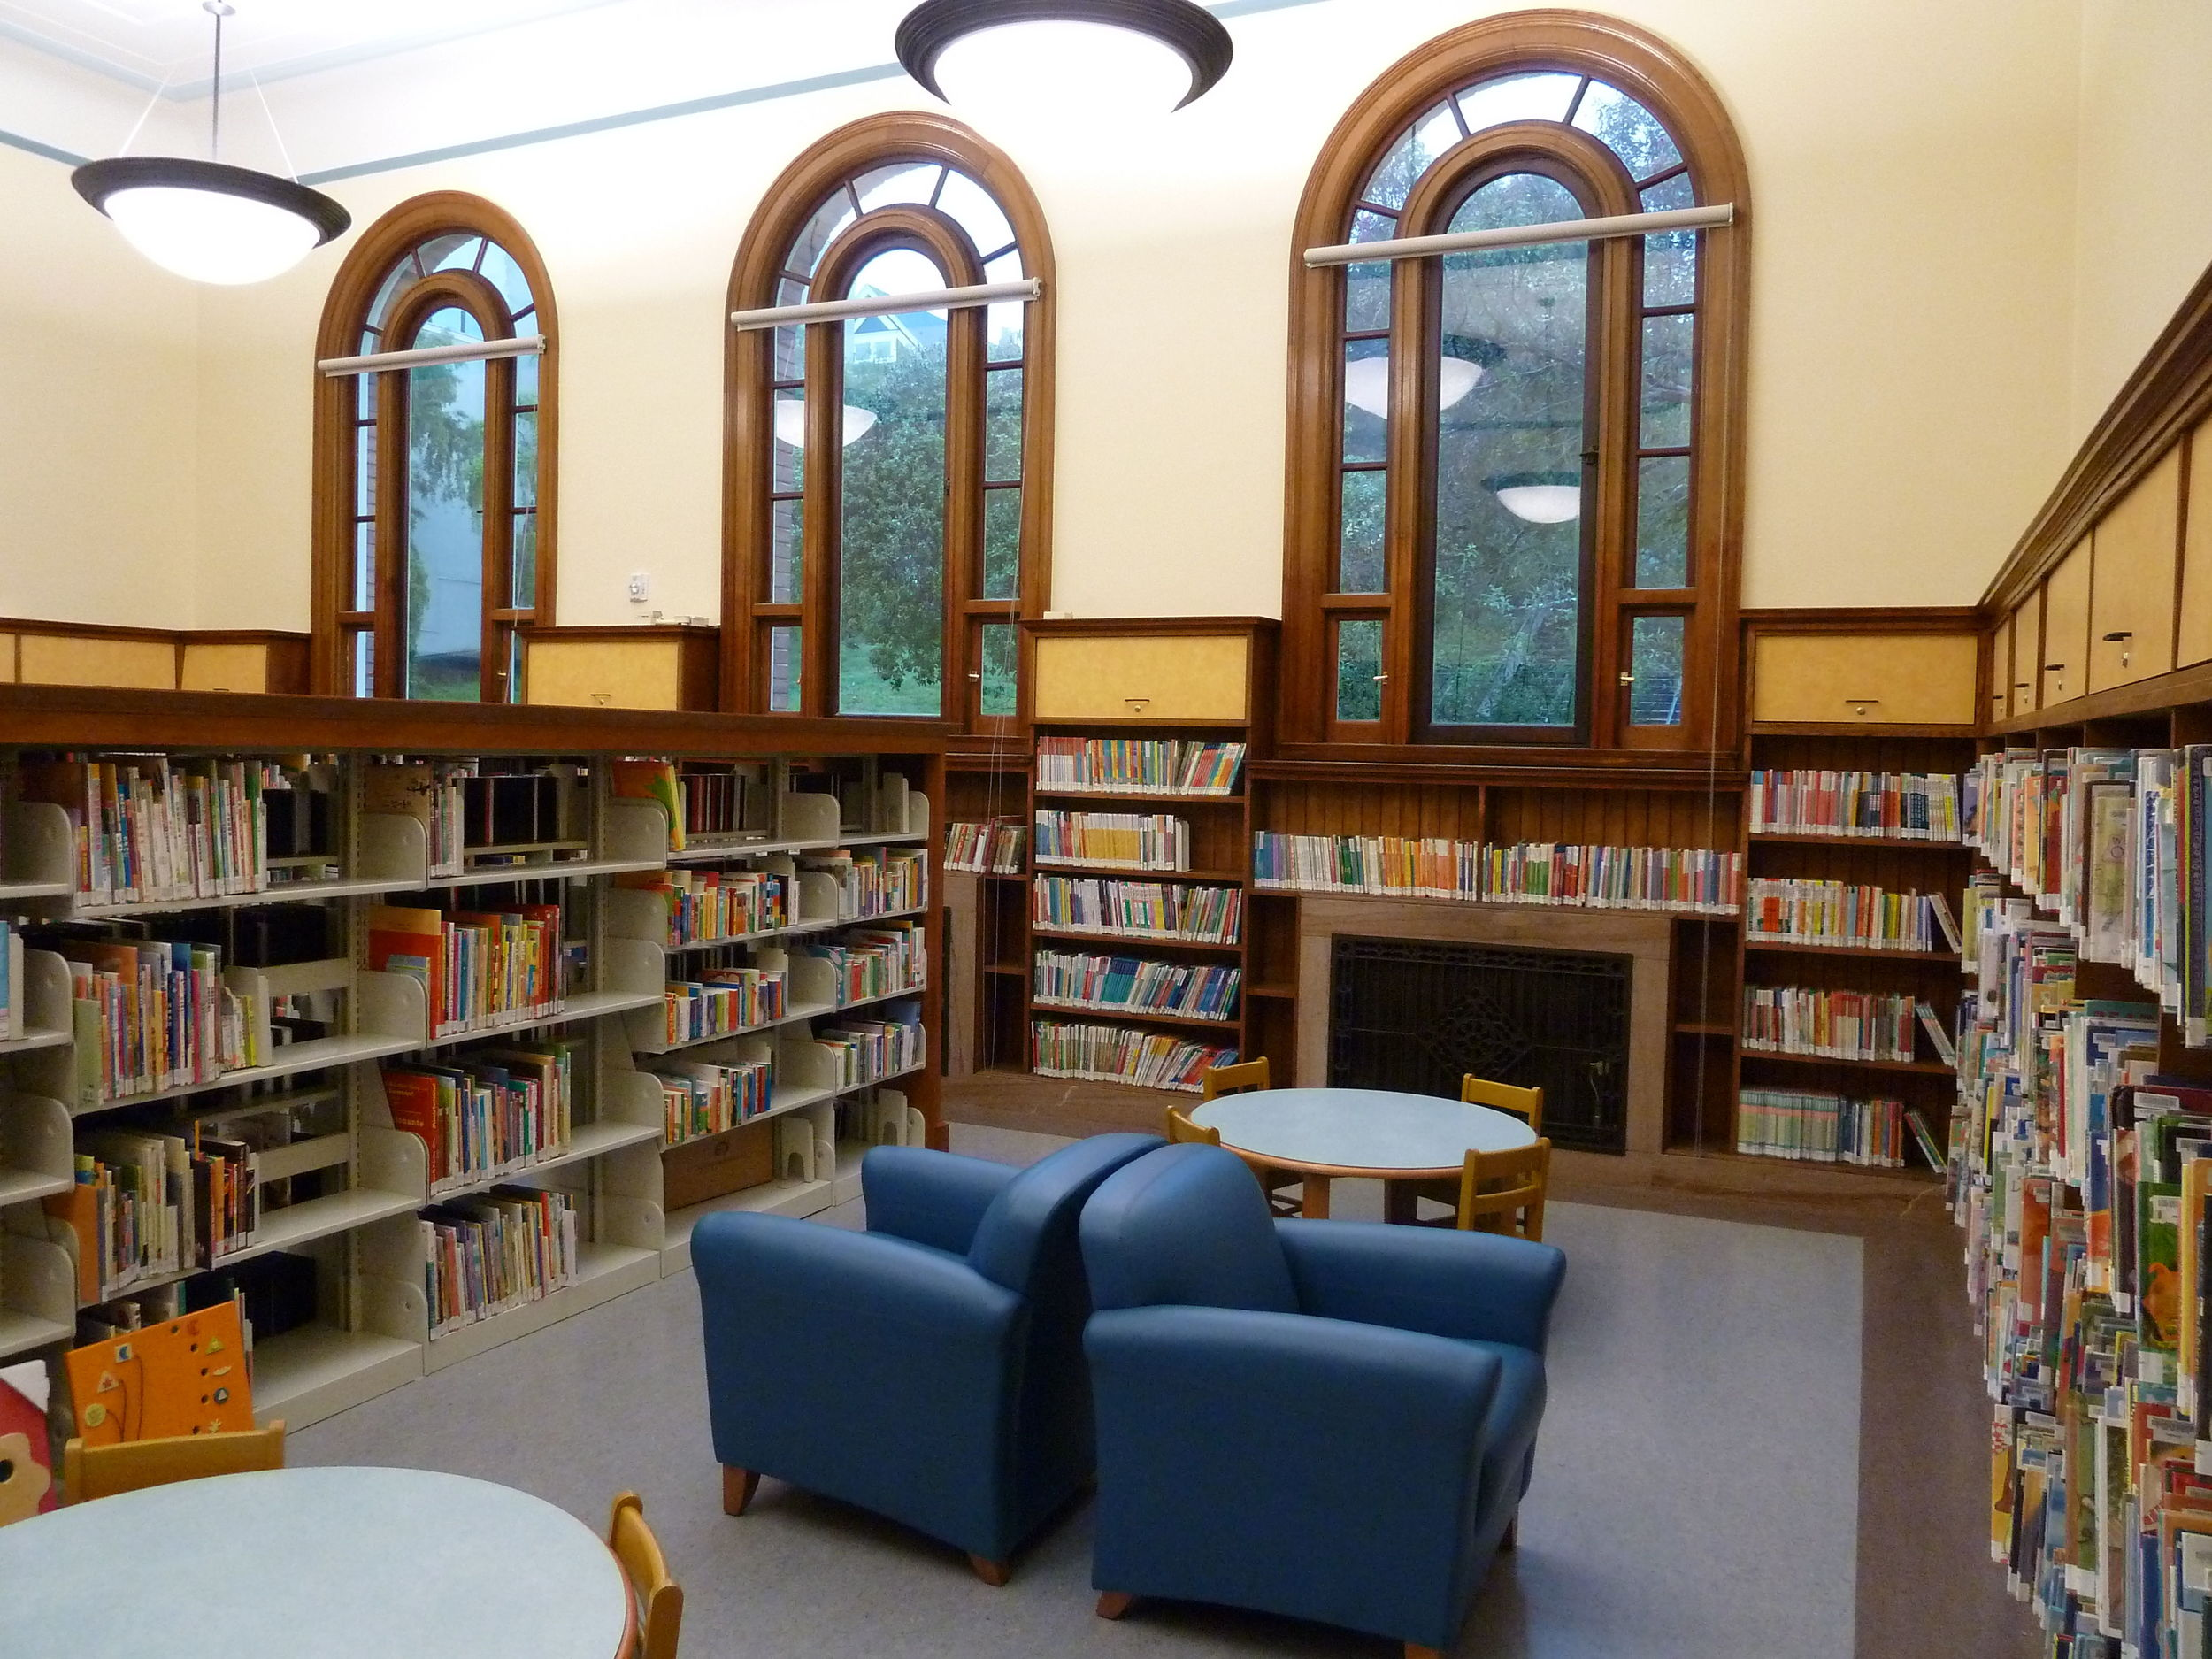 Interior_of_renovated_Presidio_Branch_Library_2011.jpg